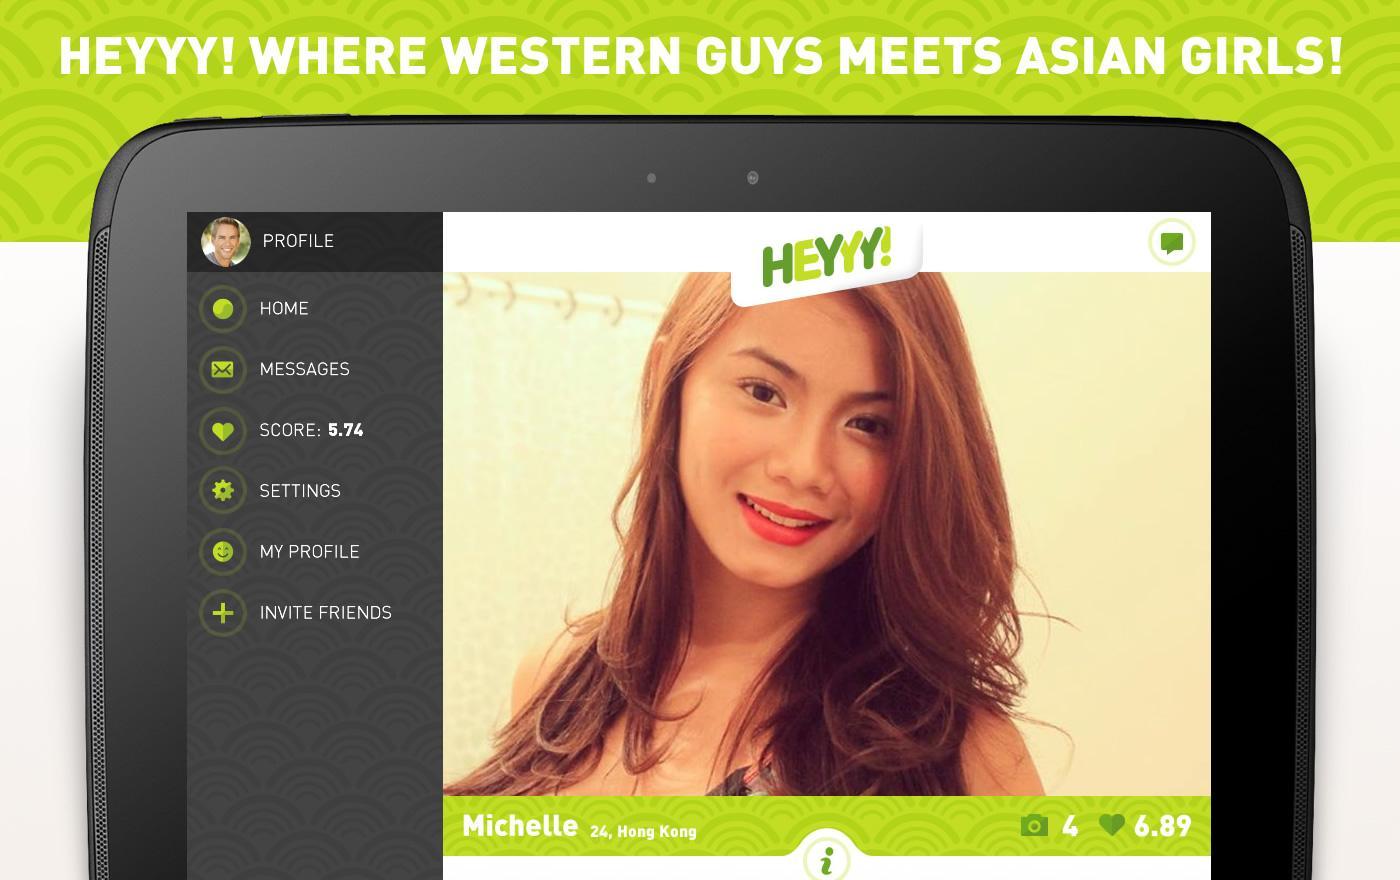 nottoway asian dating website For those of asian descent looking for a date, love, or just connecting online, there's sure to be a site here for you while most don't offer as many features as the most widely-known top dating sites, all seven sites focus entirely on people in asia or those who want to date someone asian .